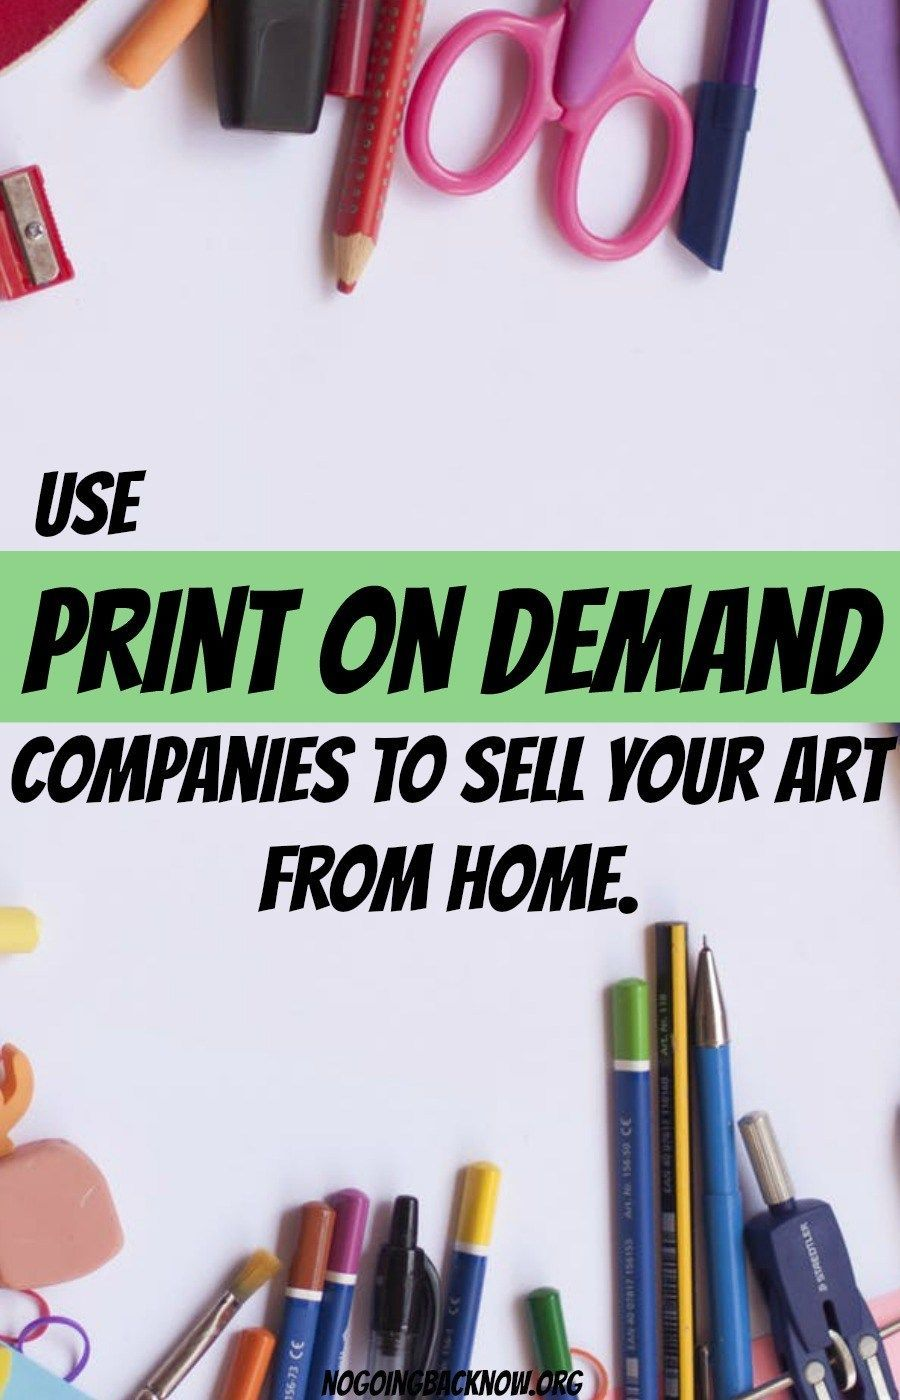 Print On Demand To Sell Your Art Selling Art Online Things To Sell Sell Your Art